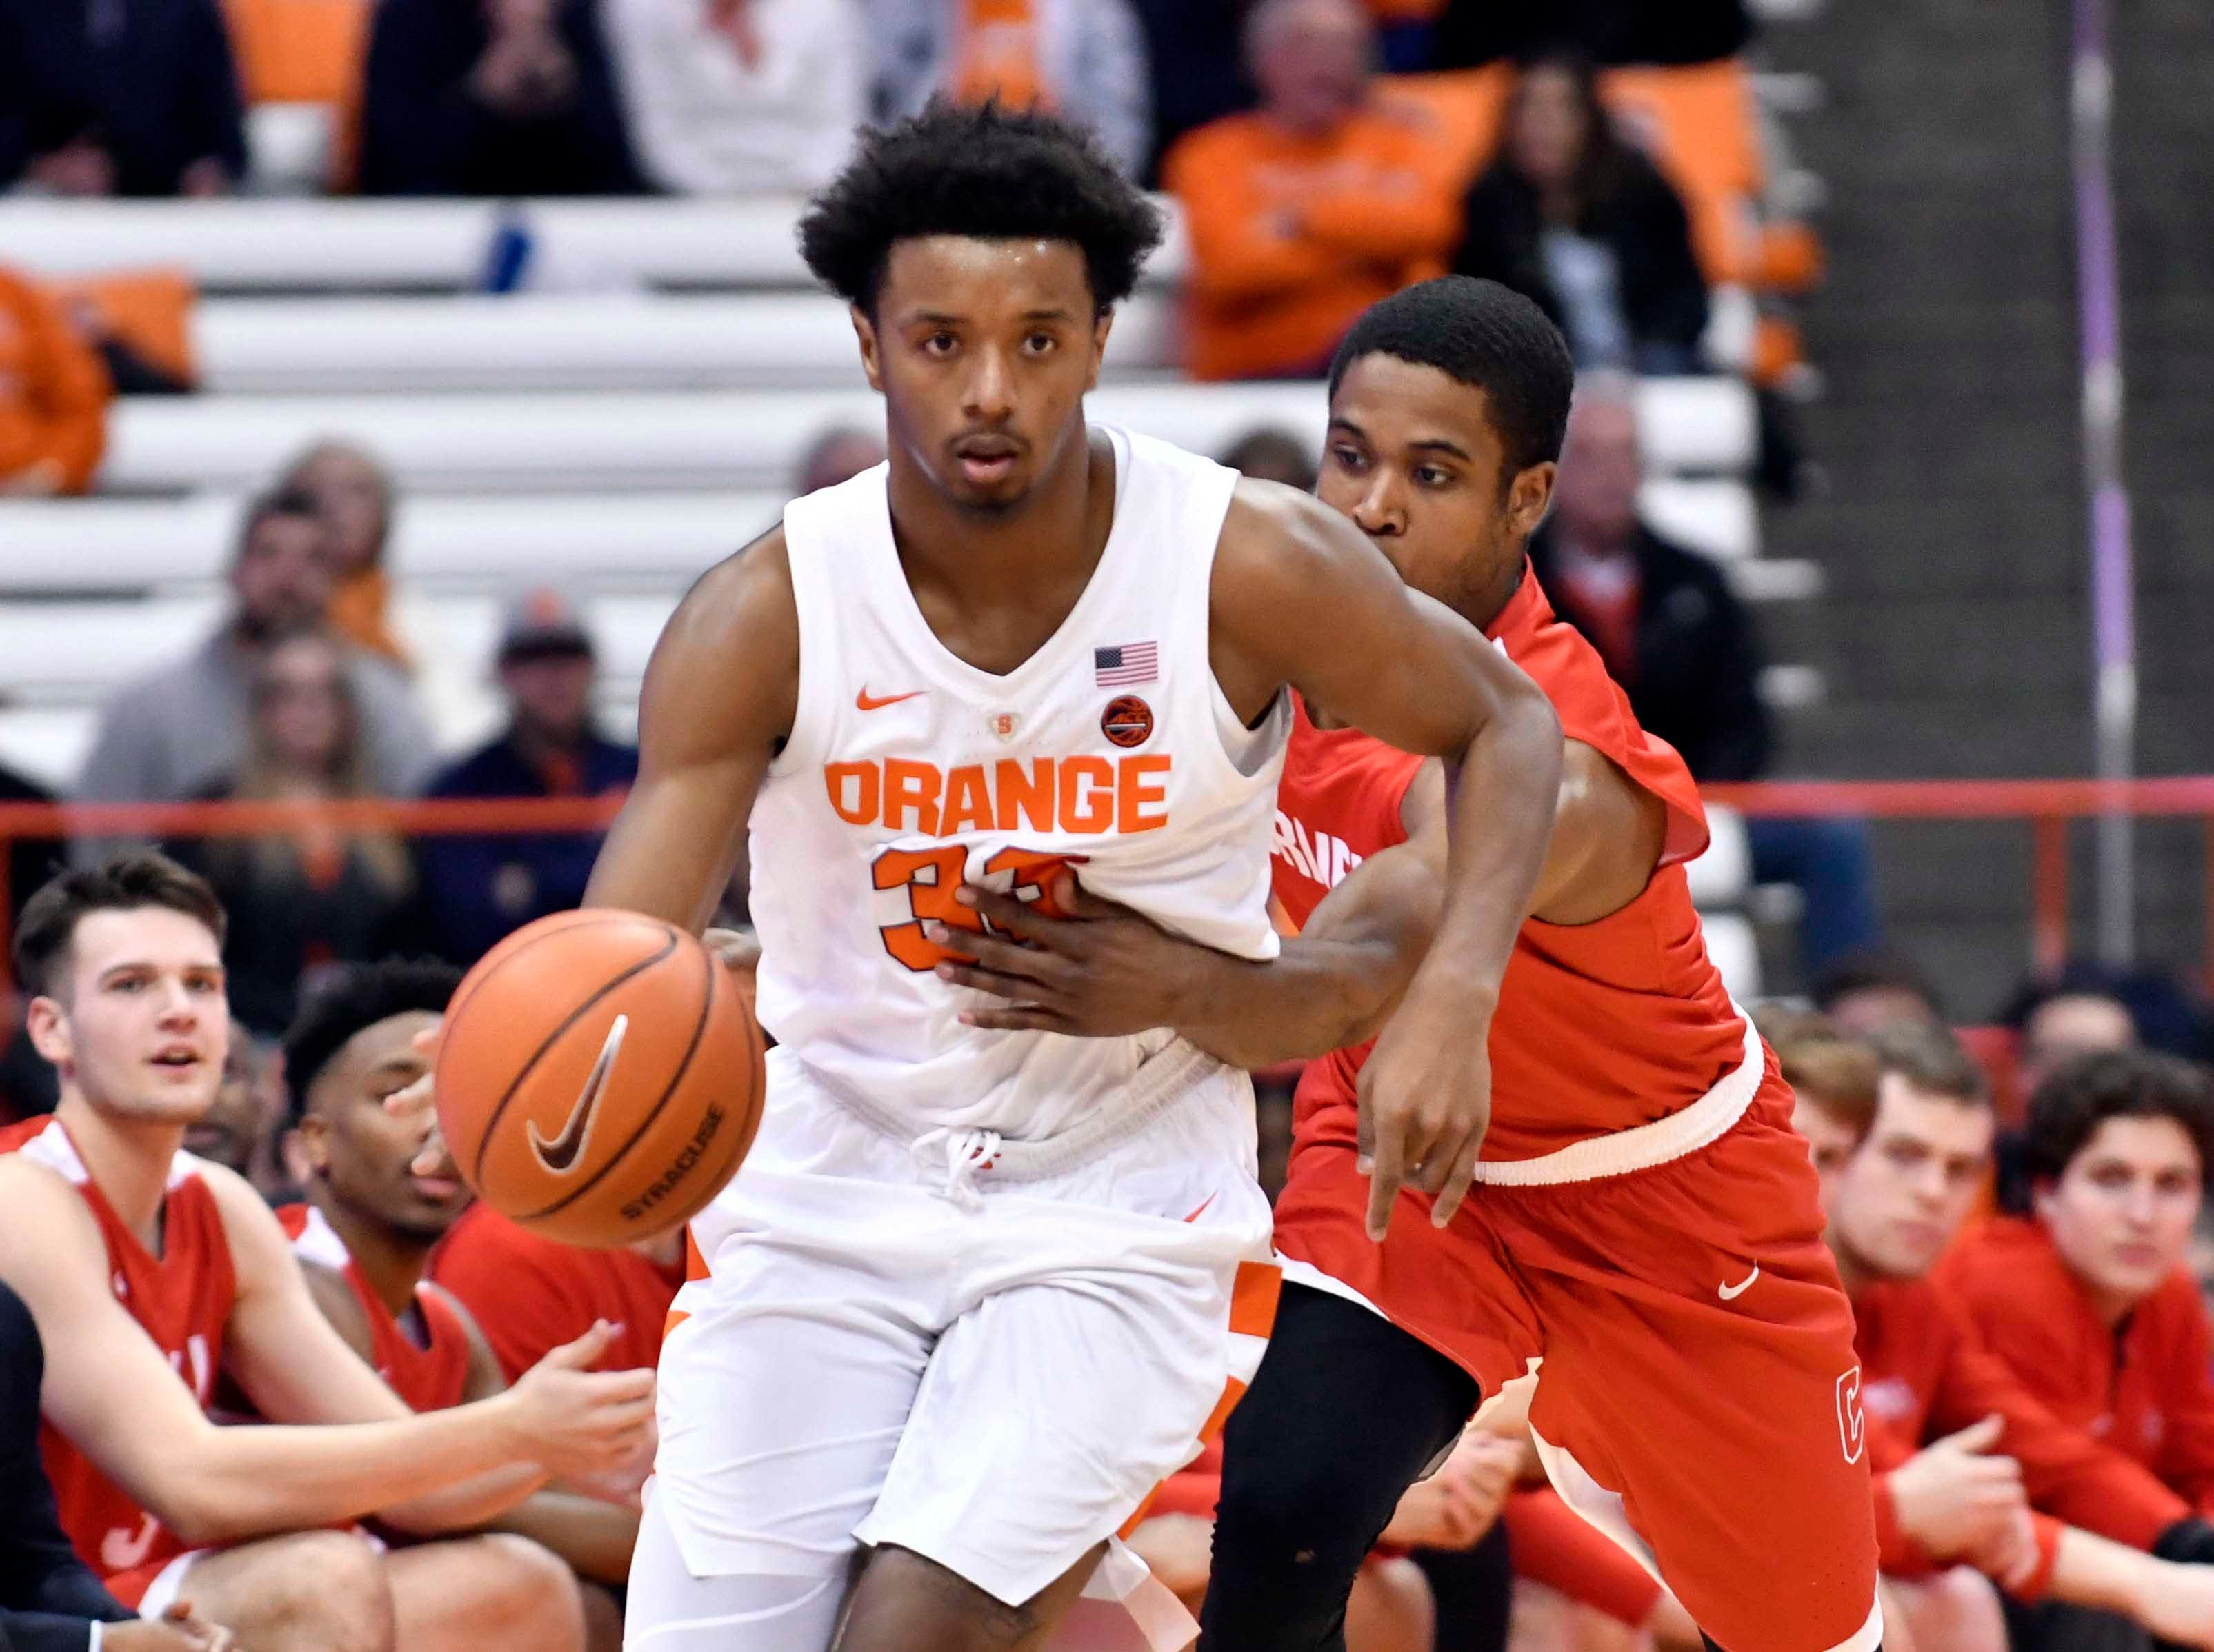 Dec 1, 2018; Syracuse, NY, USA; Syracuse Orange forward Elijah Hughes (33) is fouled by Cornell Big Red guard Troy Whiteside (4)during the second half at the Carrier Dome. Mandatory Credit: Mark Konezny-USA TODAY Sports